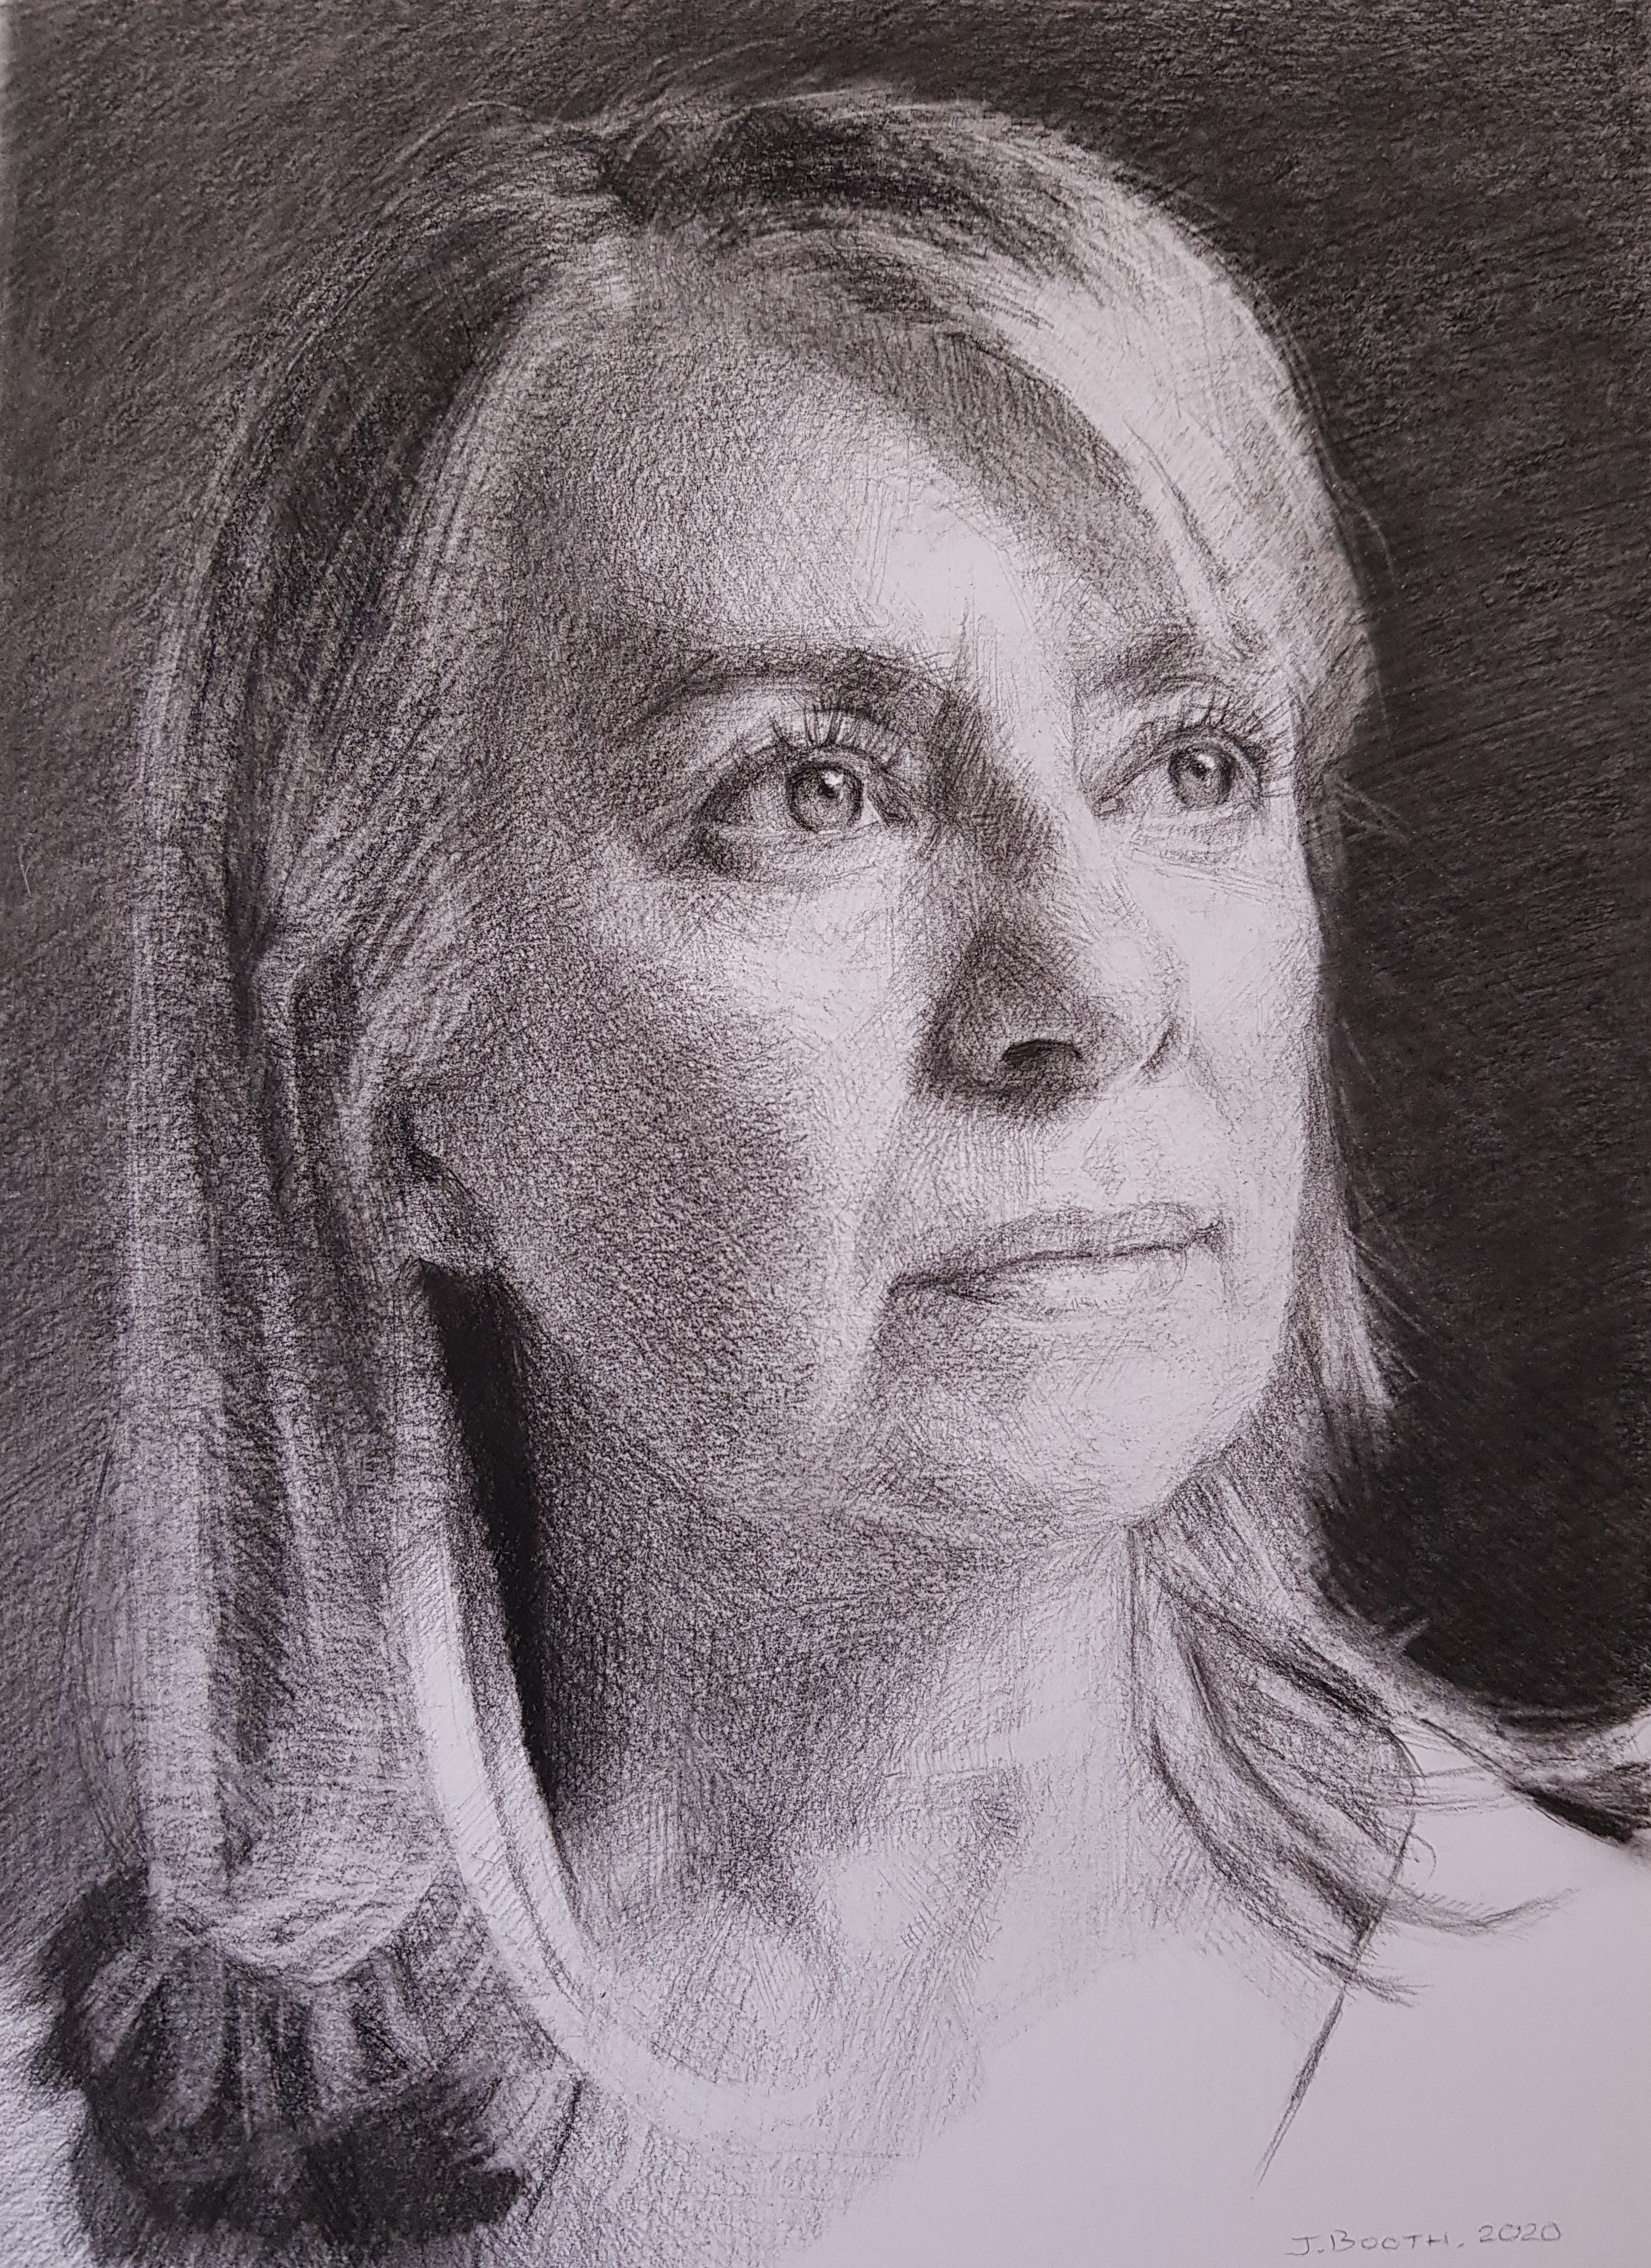 Self portrait, charcoal on Bristol board, 20x30cm, SOLD